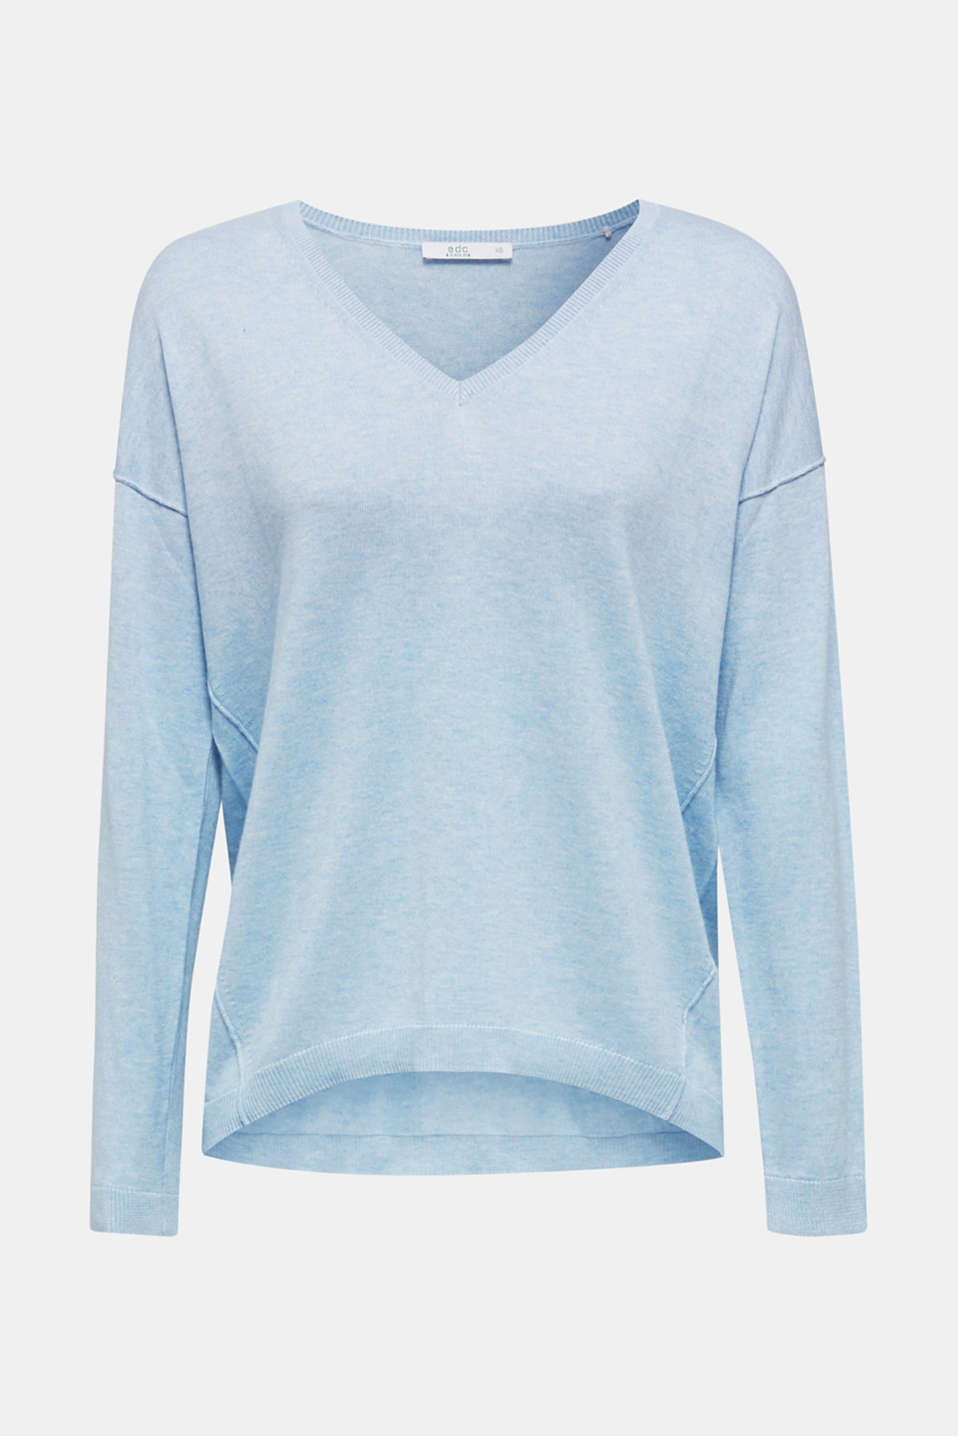 Sweaters, LIGHT BLUE 5, detail image number 6